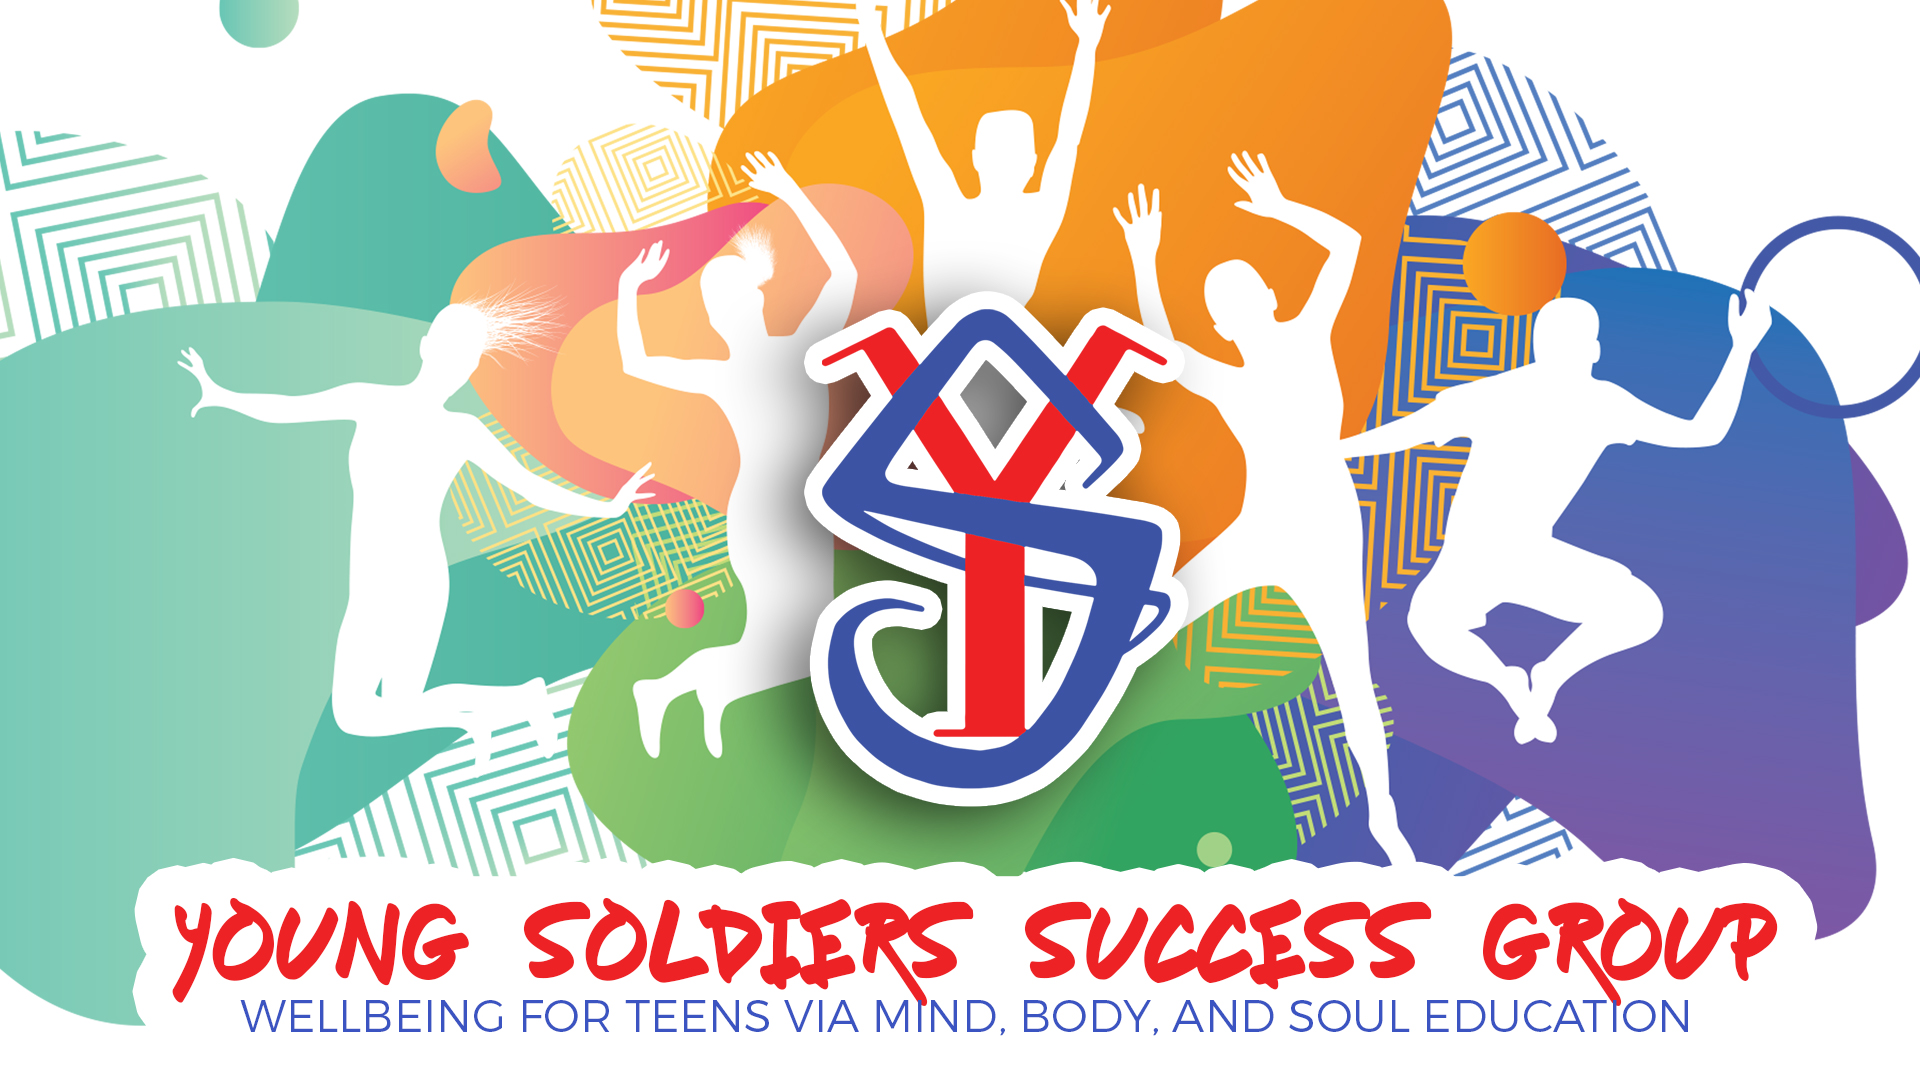 Young Soldiers Success Group Inc. Launches Indiegogo Campaign For Their Retreat